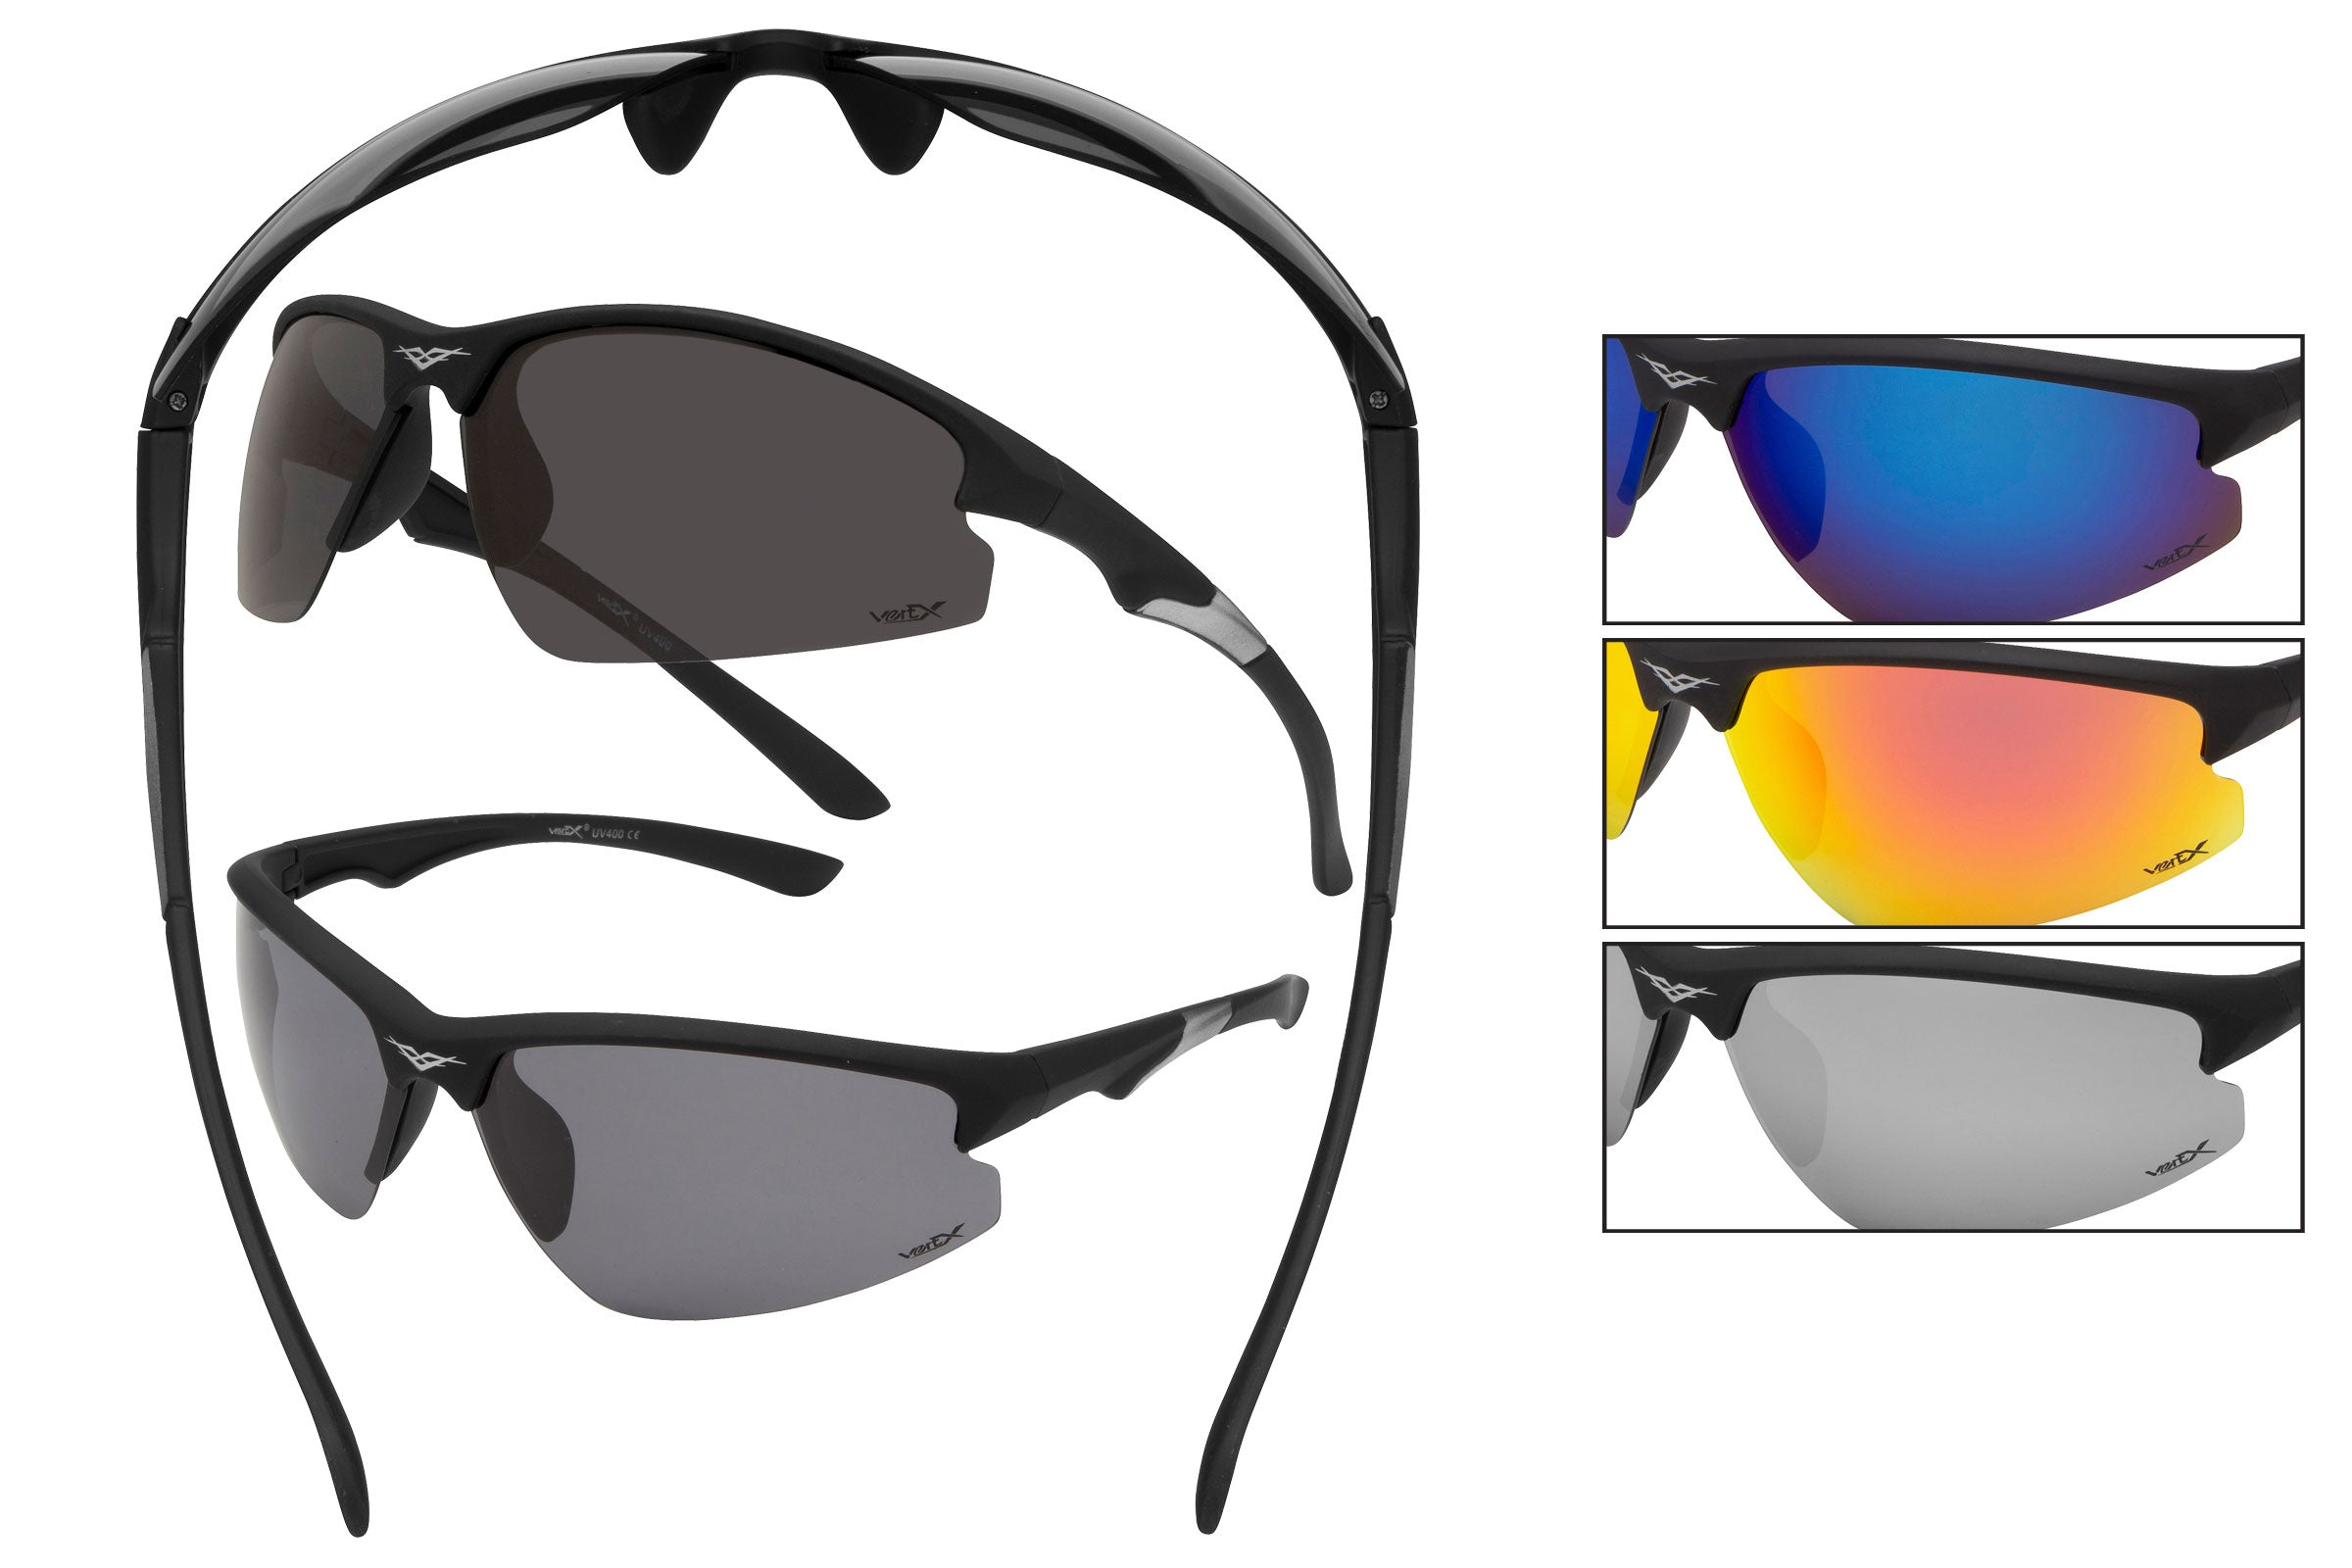 52045-POL - VertX Polarized Sports Wrap Sunglasses